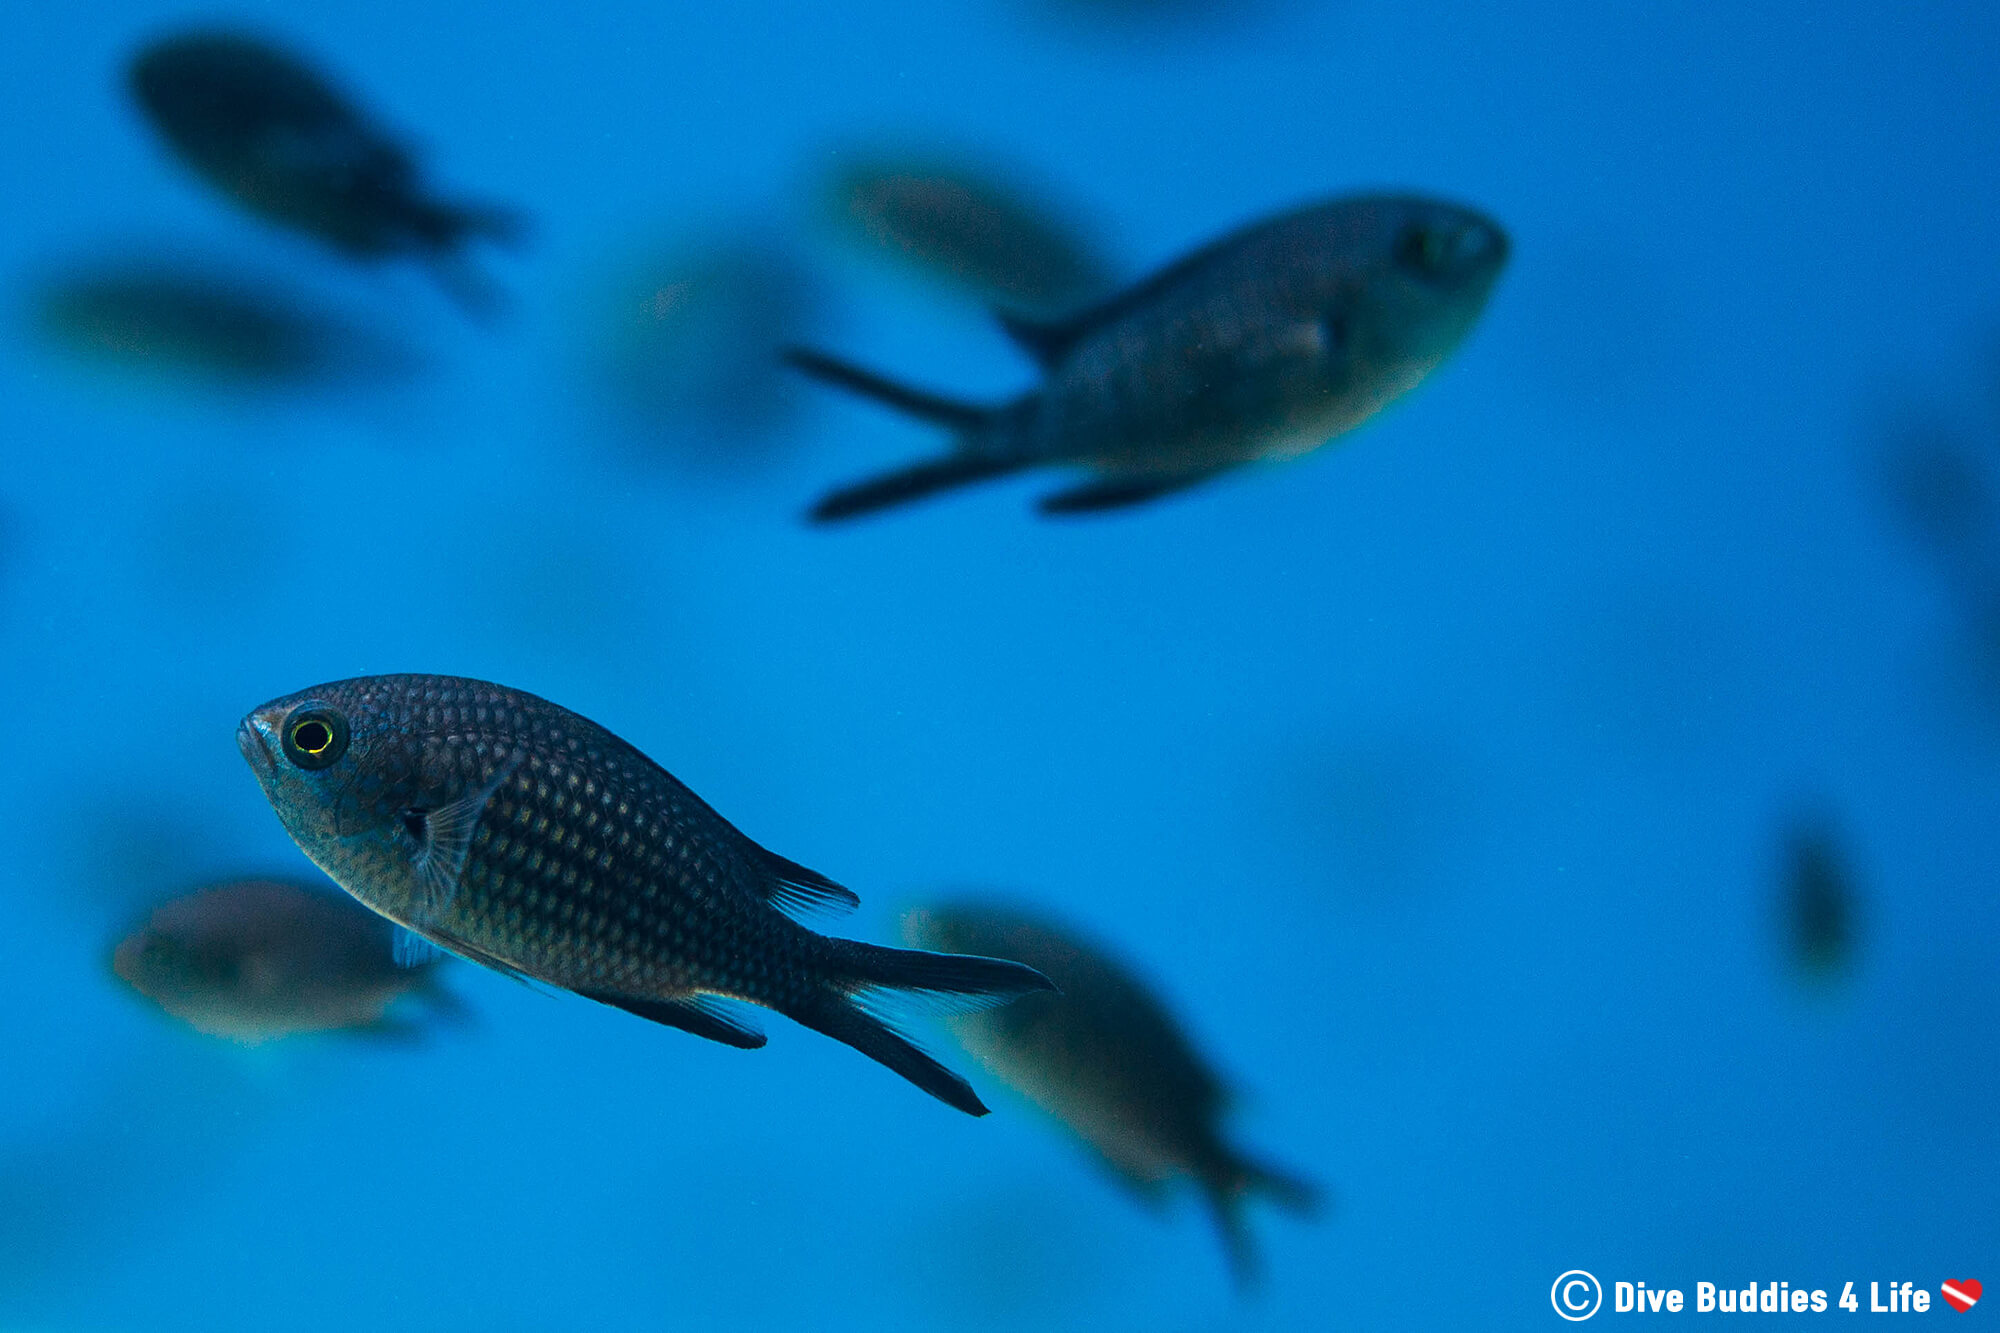 A School Of Sporadically Swimming Damselfish In The Blue Croatian Waters Of Dubrovnik In Europe's Balkan Countries